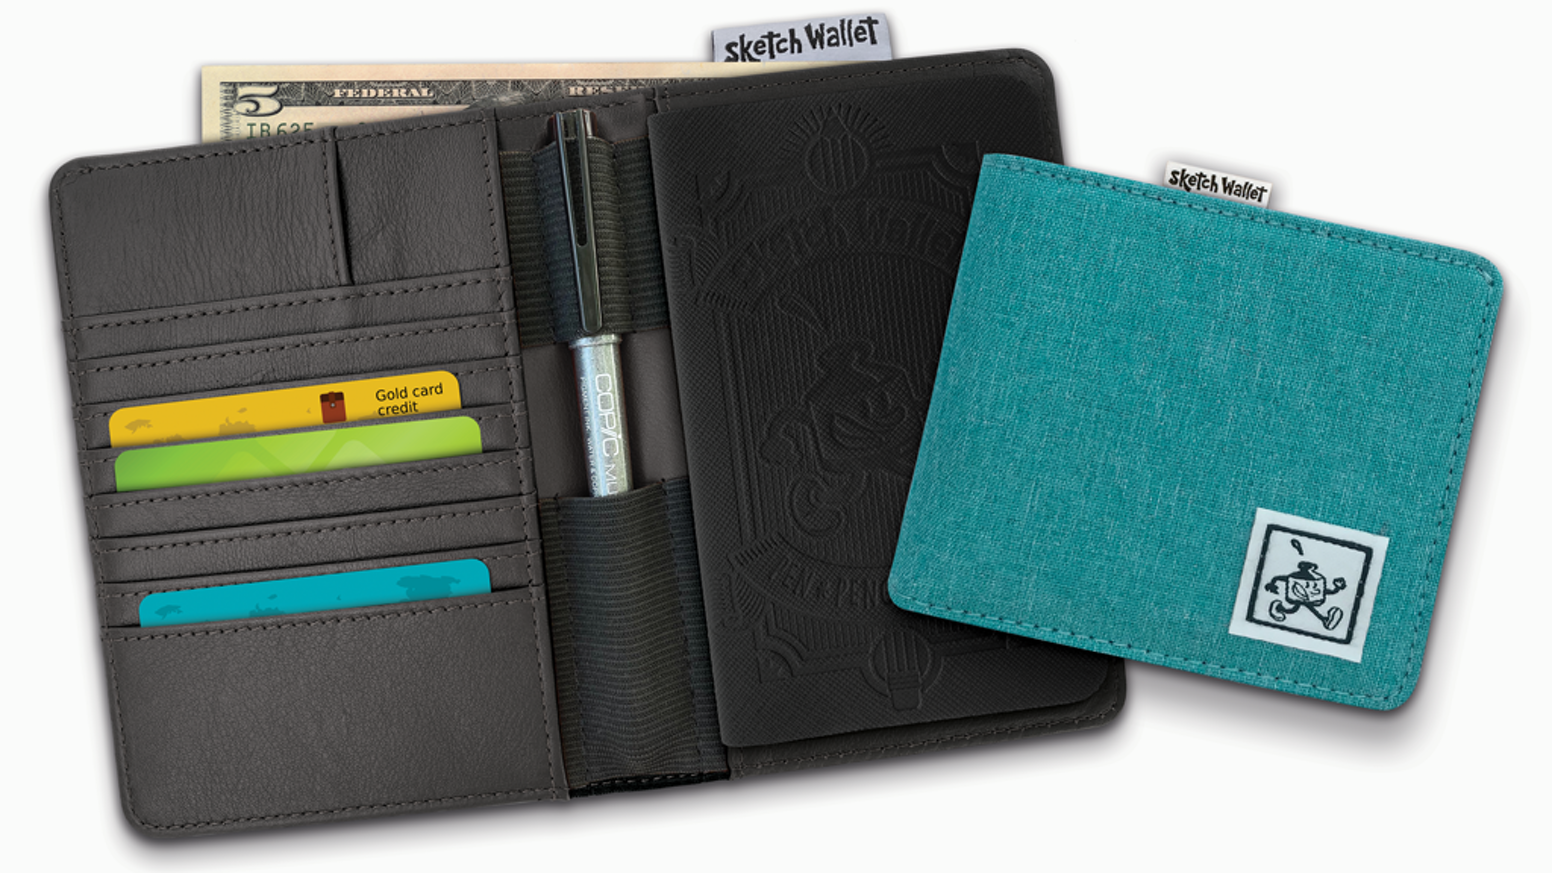 It's a wallet with a sketchbook inside - Now with new features!